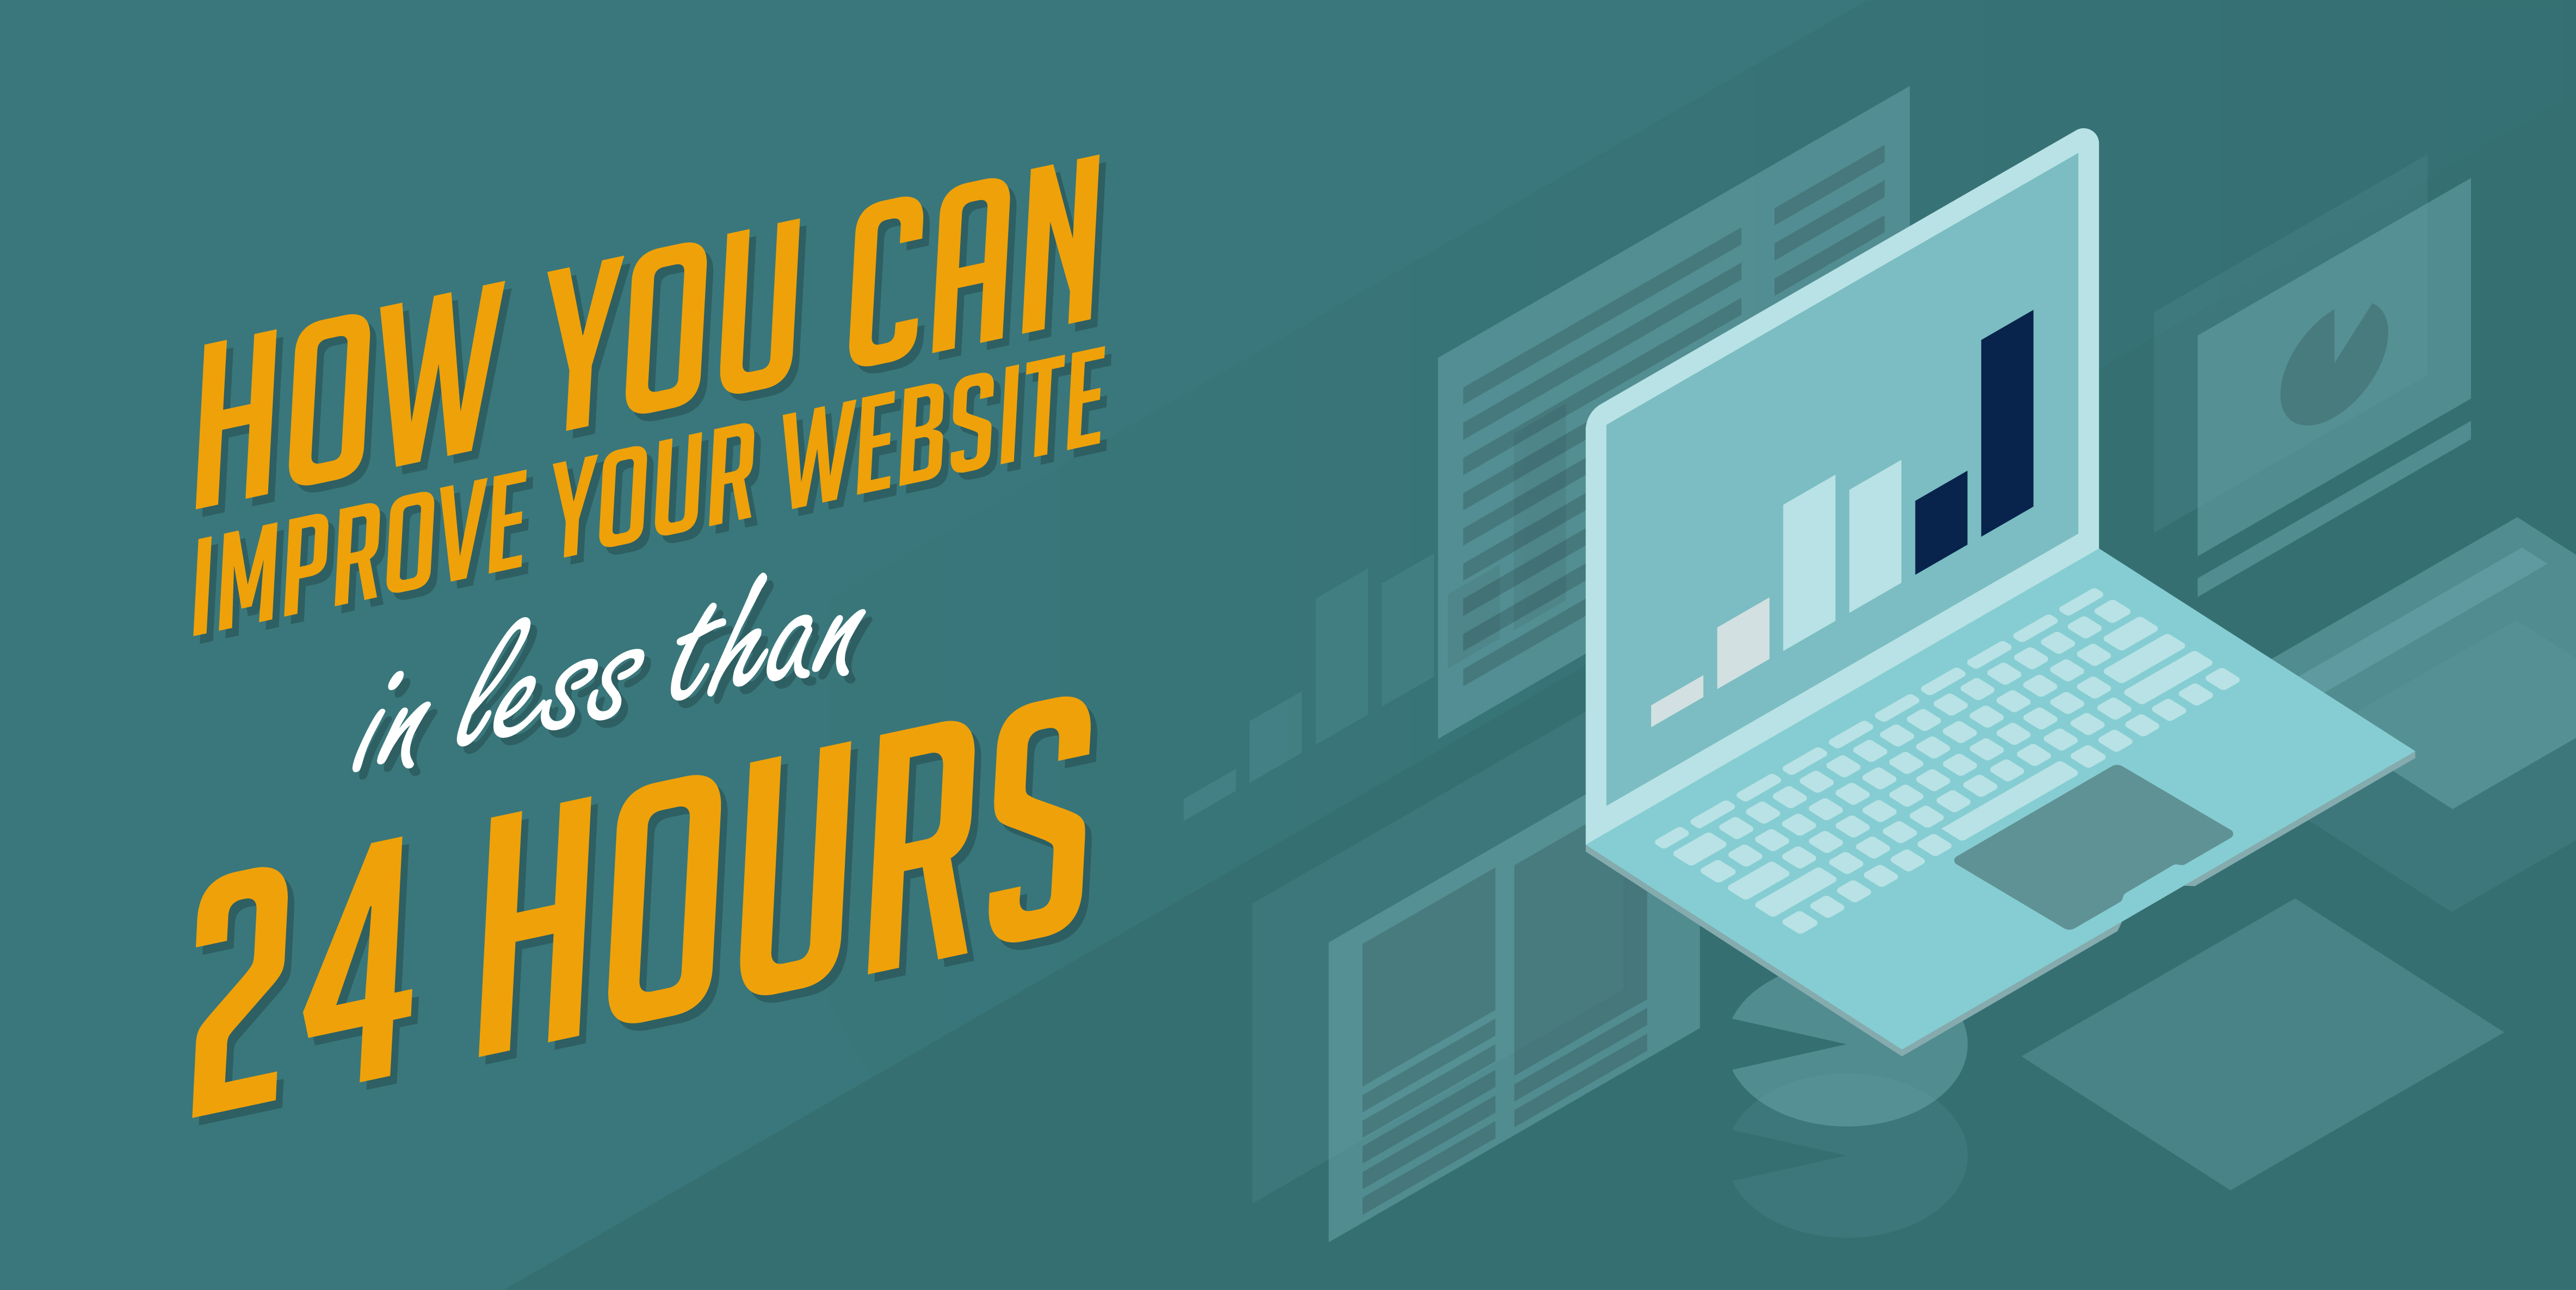 Improve Your Website in 24hrs